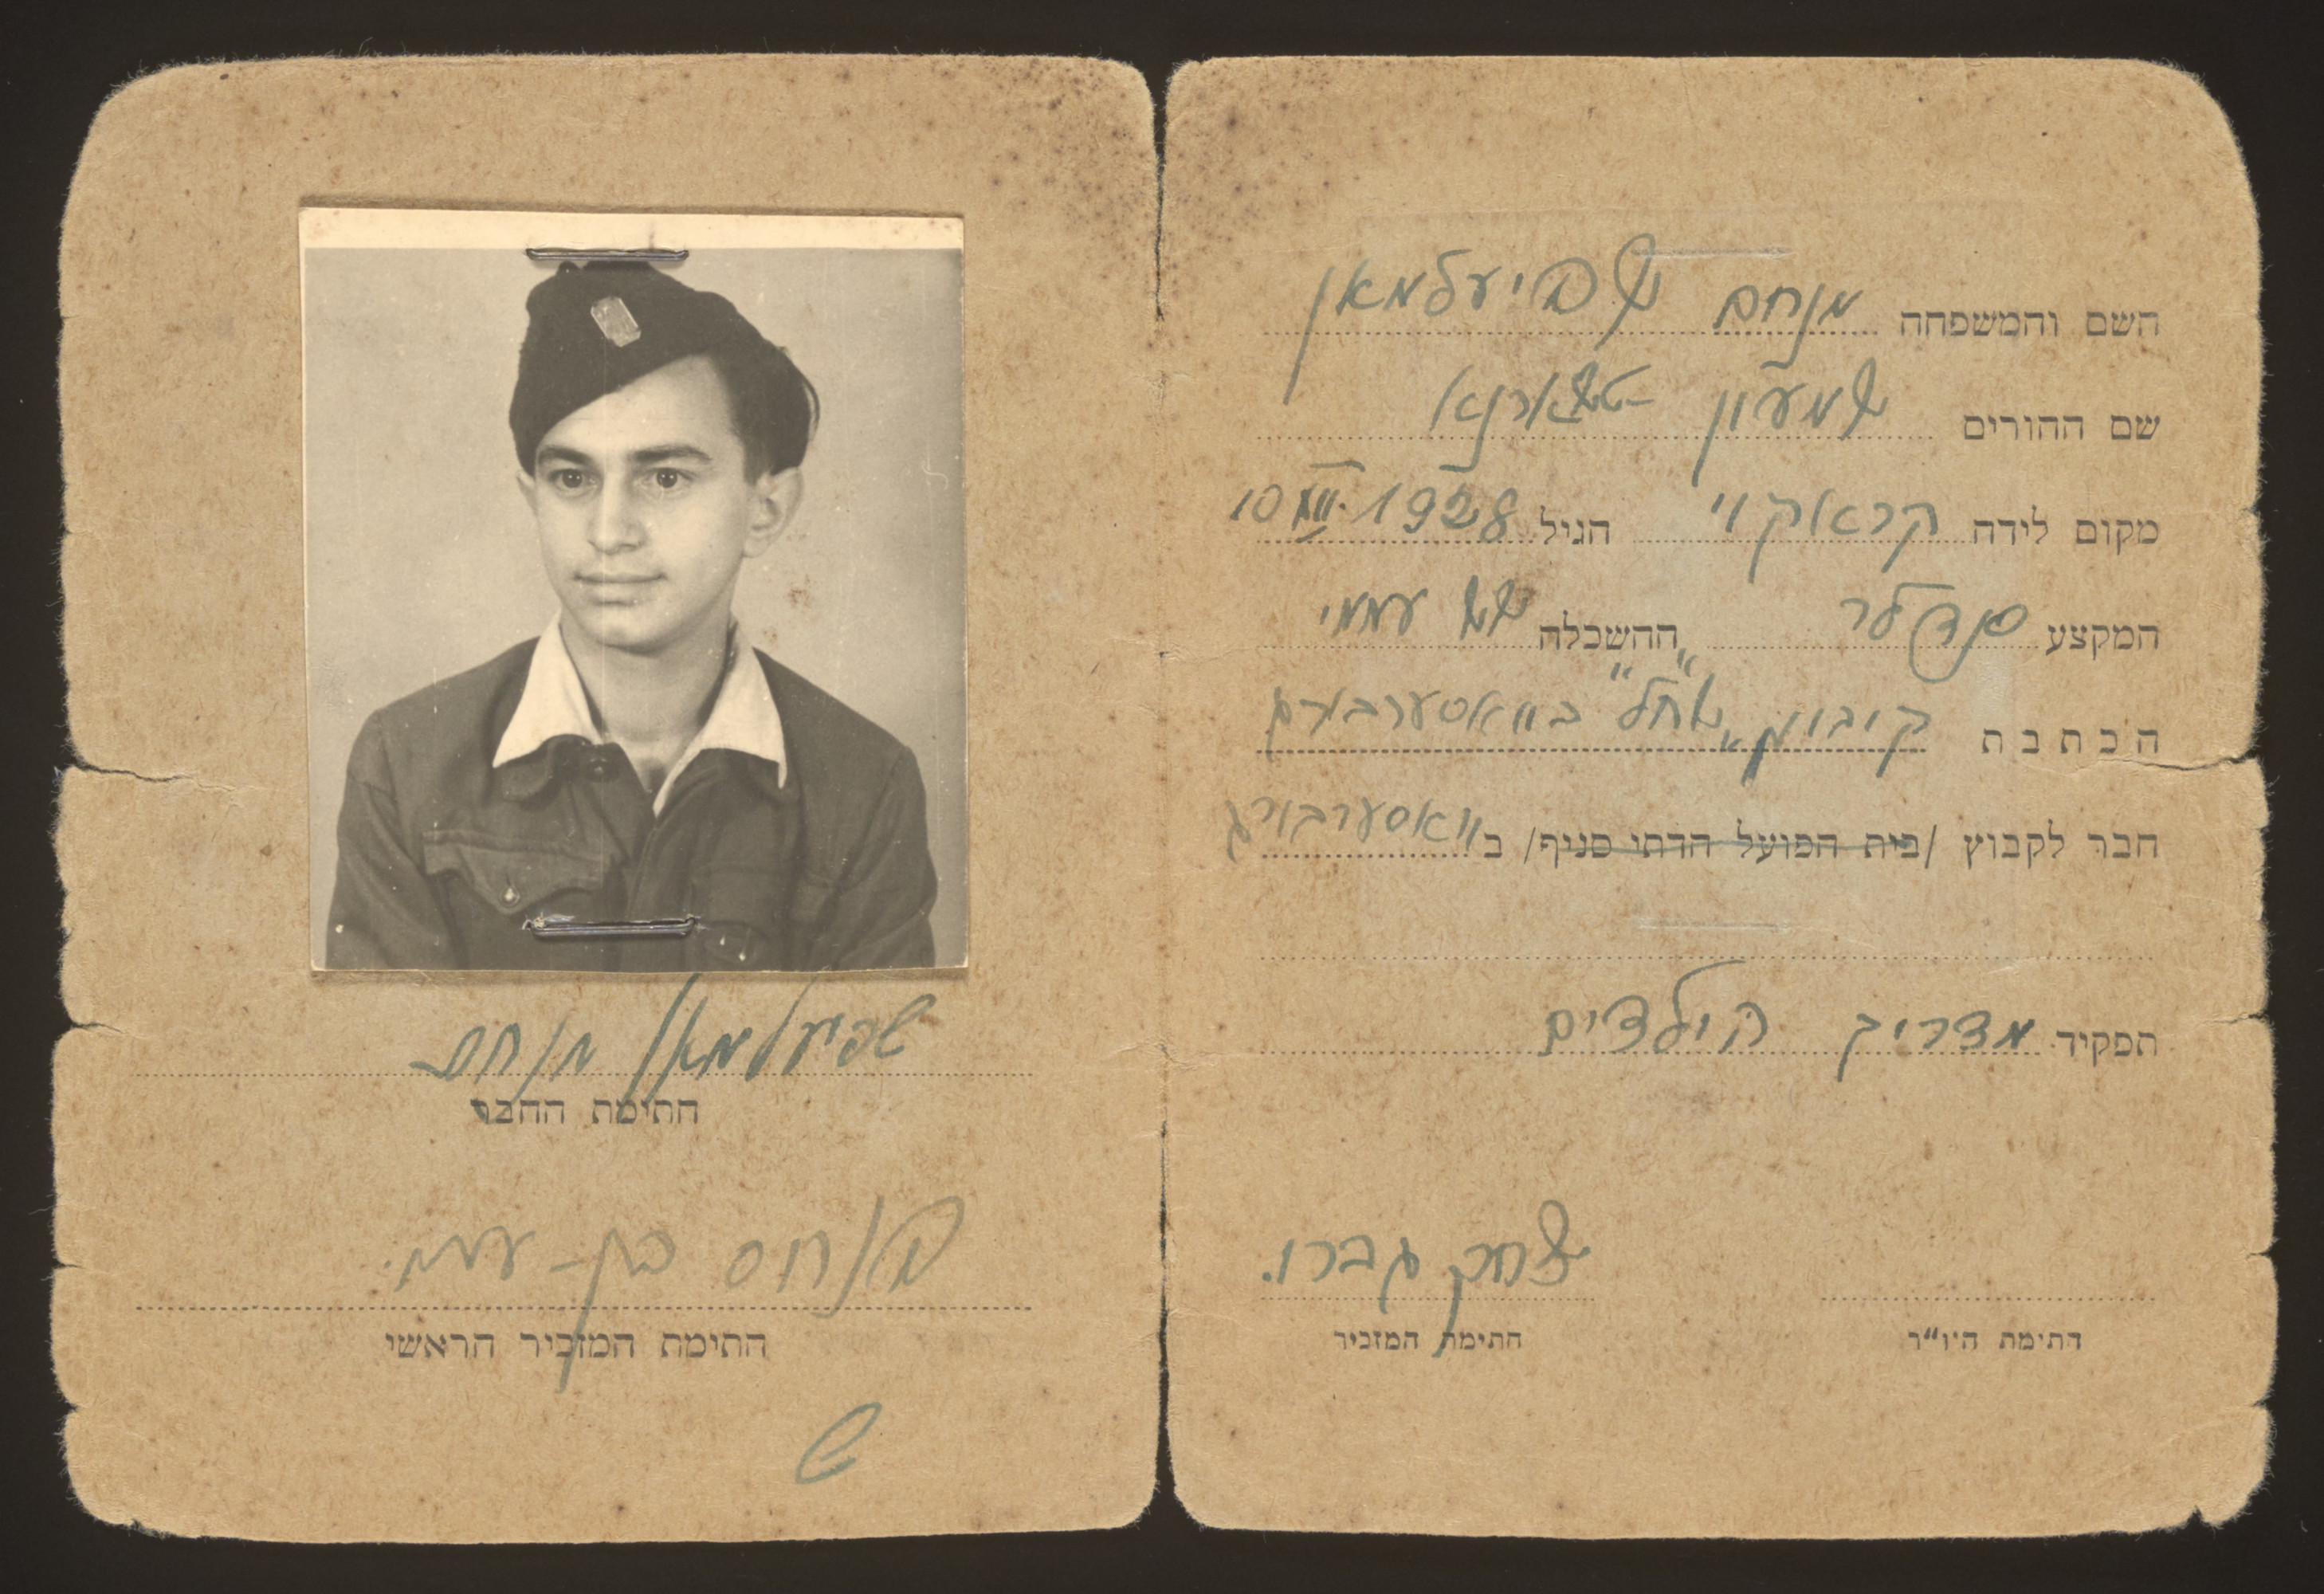 Membership card for the Gabersee/Wasserburg chapter of the Orthodox Zionist group Mizrachi issued to Menachem Spielman.